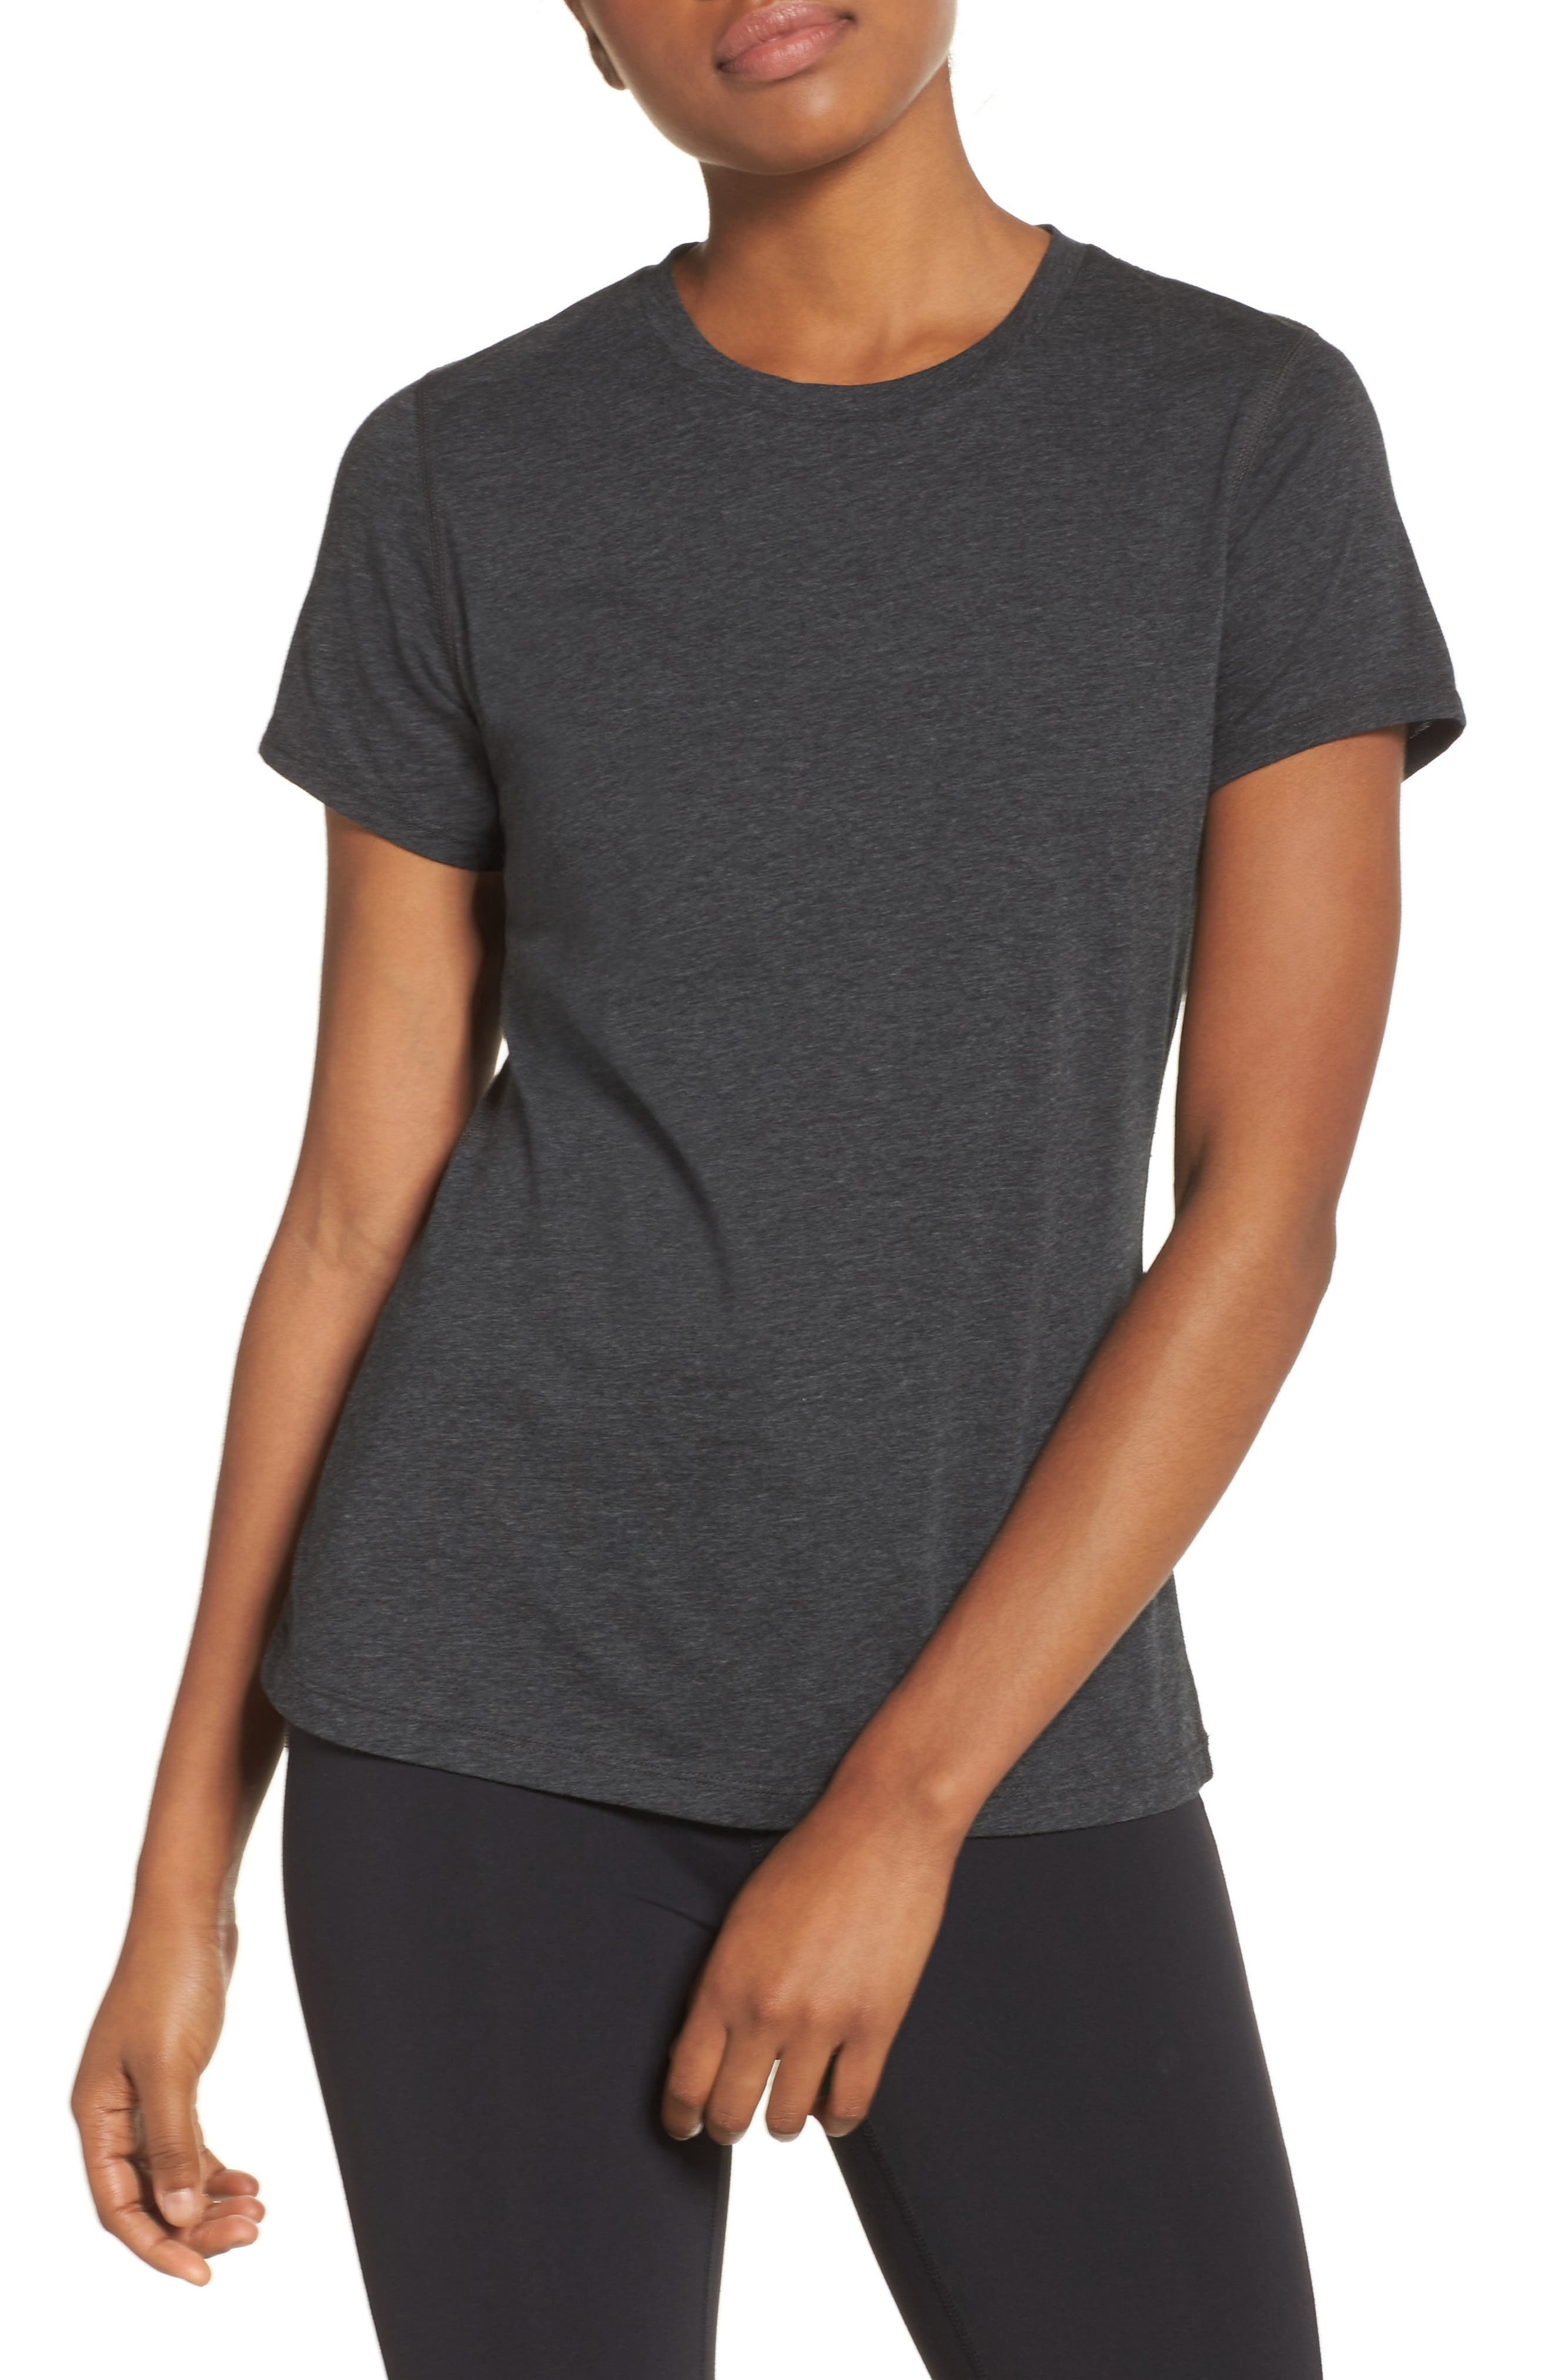 NEW BALANCE Heather Tech Tee, Main, color, 001